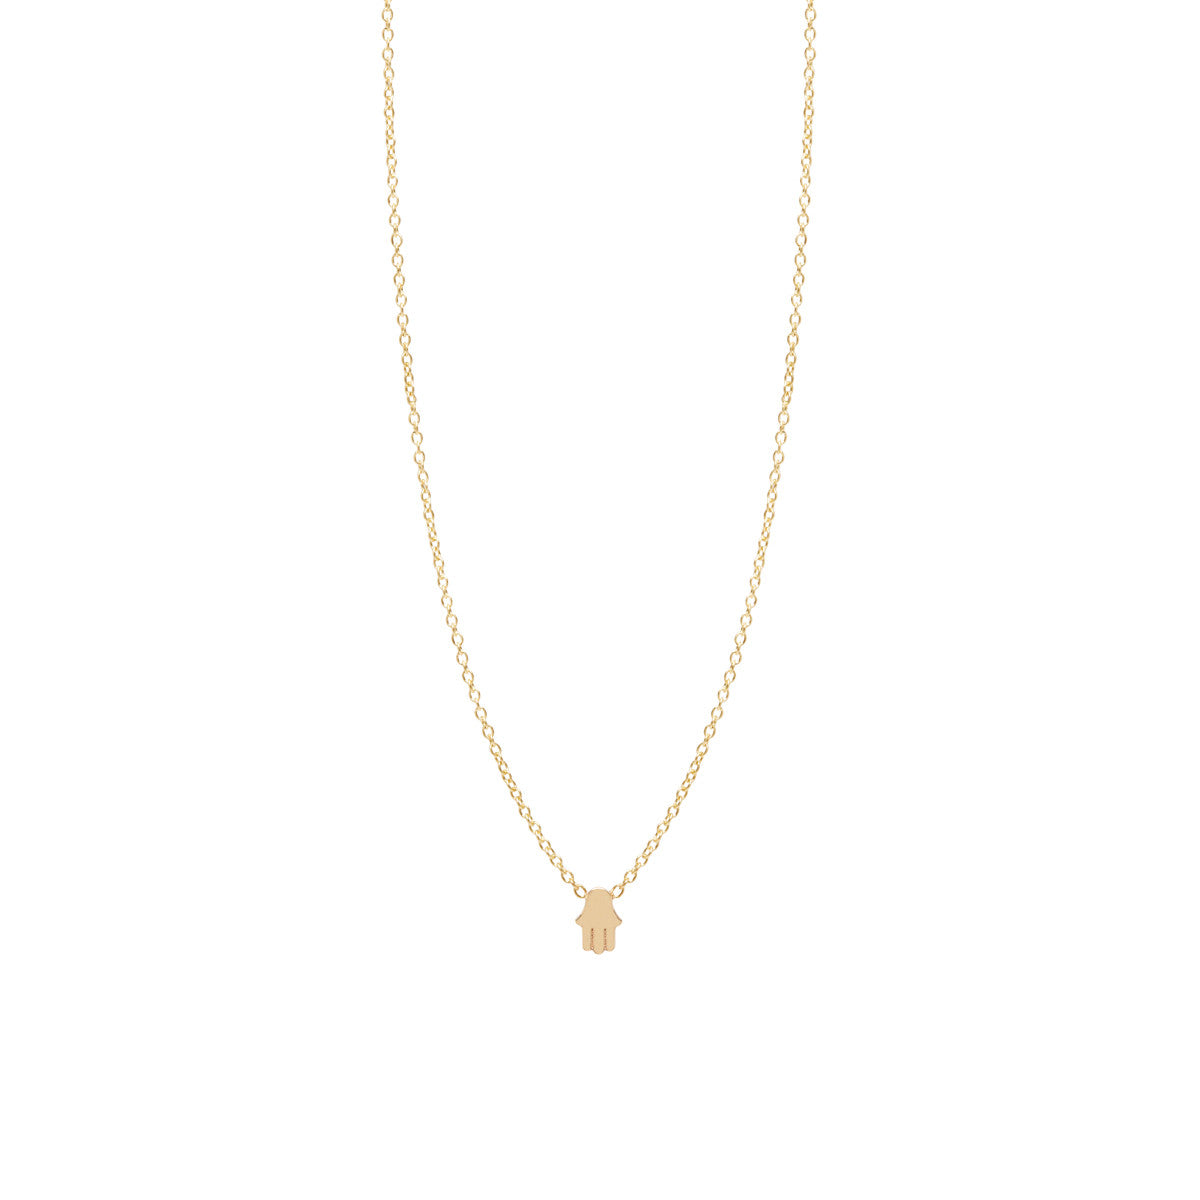 14k itty bitty hamsa necklace